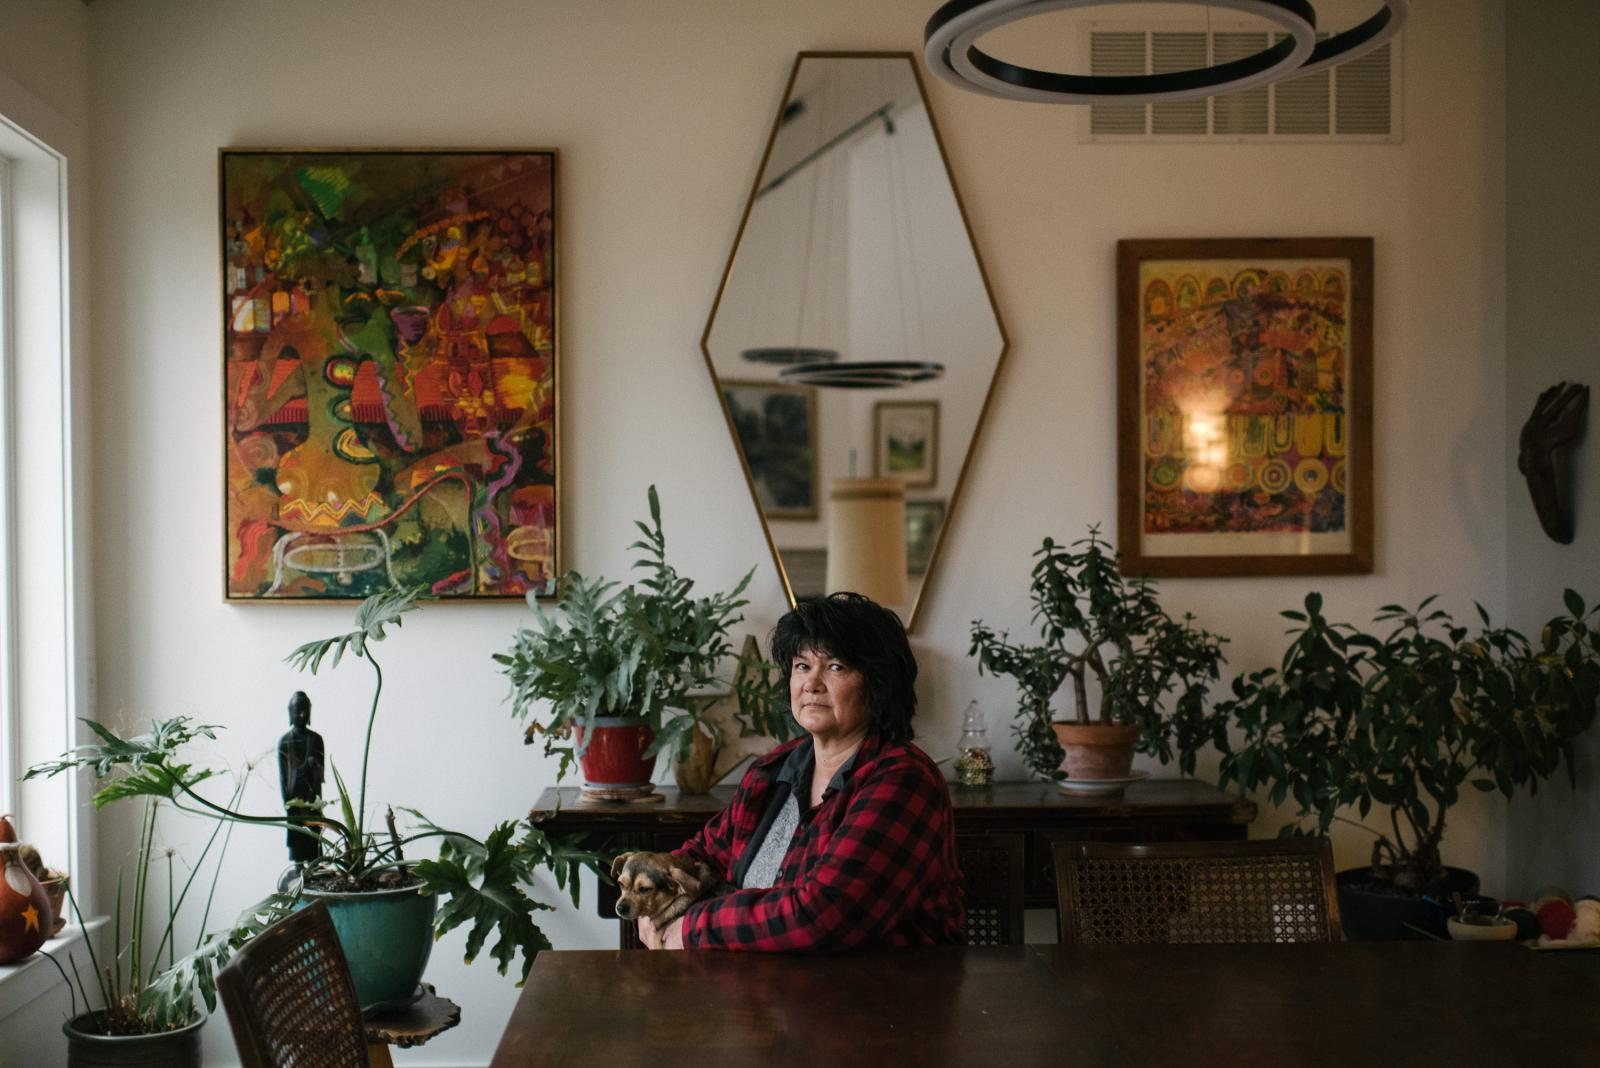 Teri Hines, 57, sits for a portrait at her home in Smyrna, Delaware on Monday, December 30, 2019. Hines shared about her struggle with depression as she was going through perimenopause in 2008/2009.